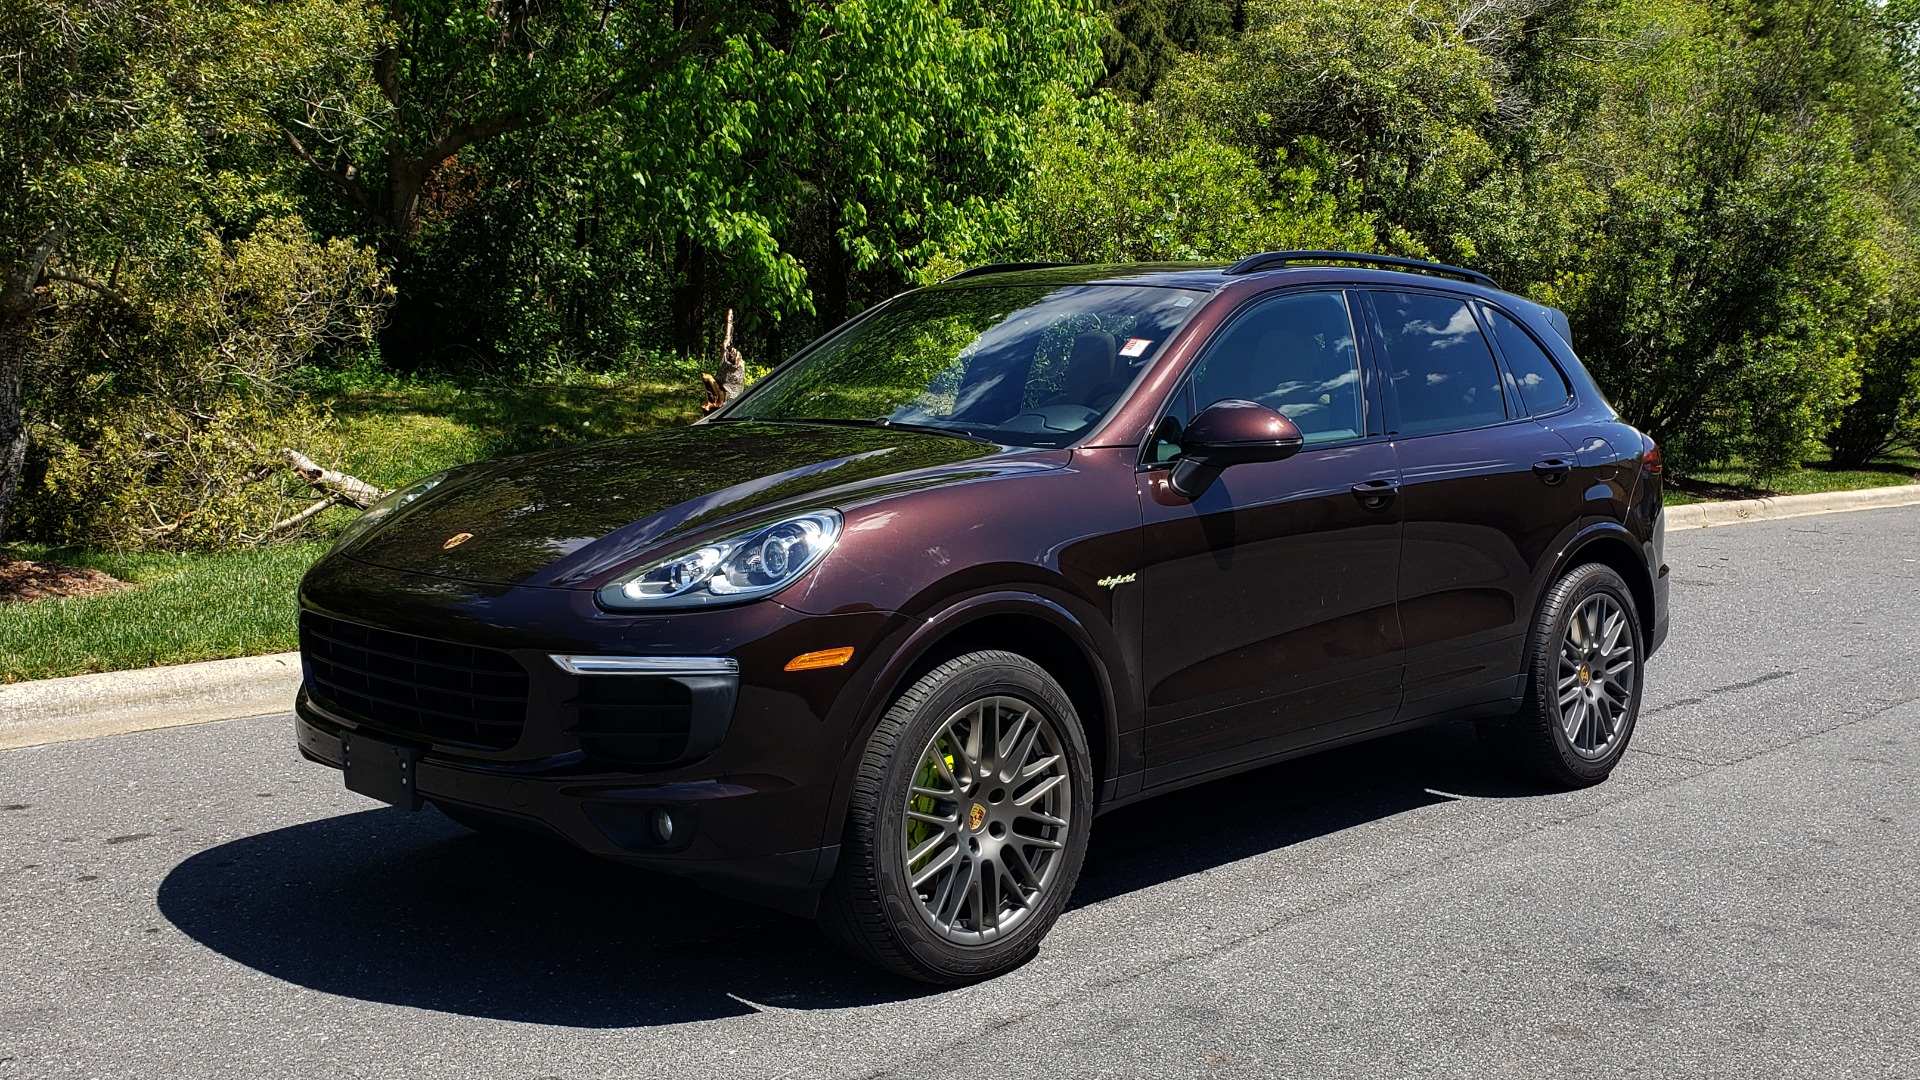 Used 2017 Porsche CAYENNE S E-HYBRID PLATINUM EDITION for sale Sold at Formula Imports in Charlotte NC 28227 1